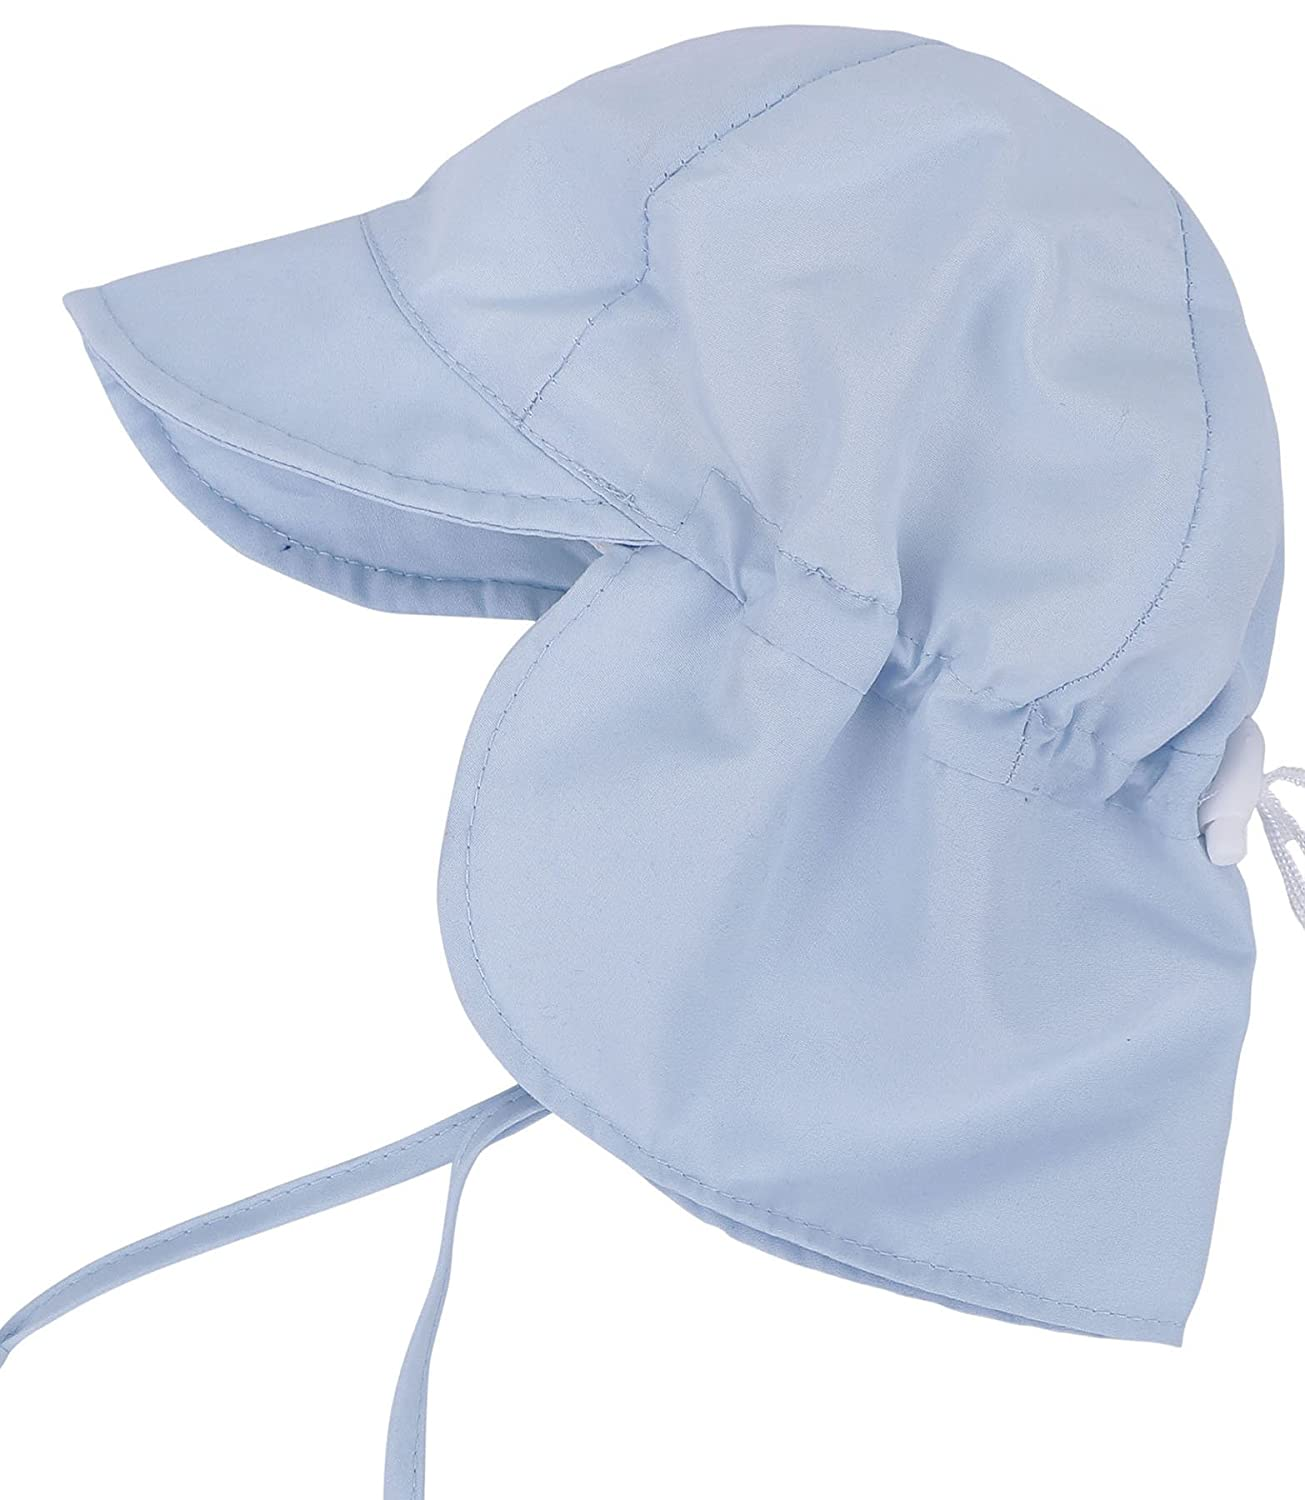 SimpliKids UPF 50+ UV Ray Sun Protection Baby Hat w/ Neck Flap & Drawstring